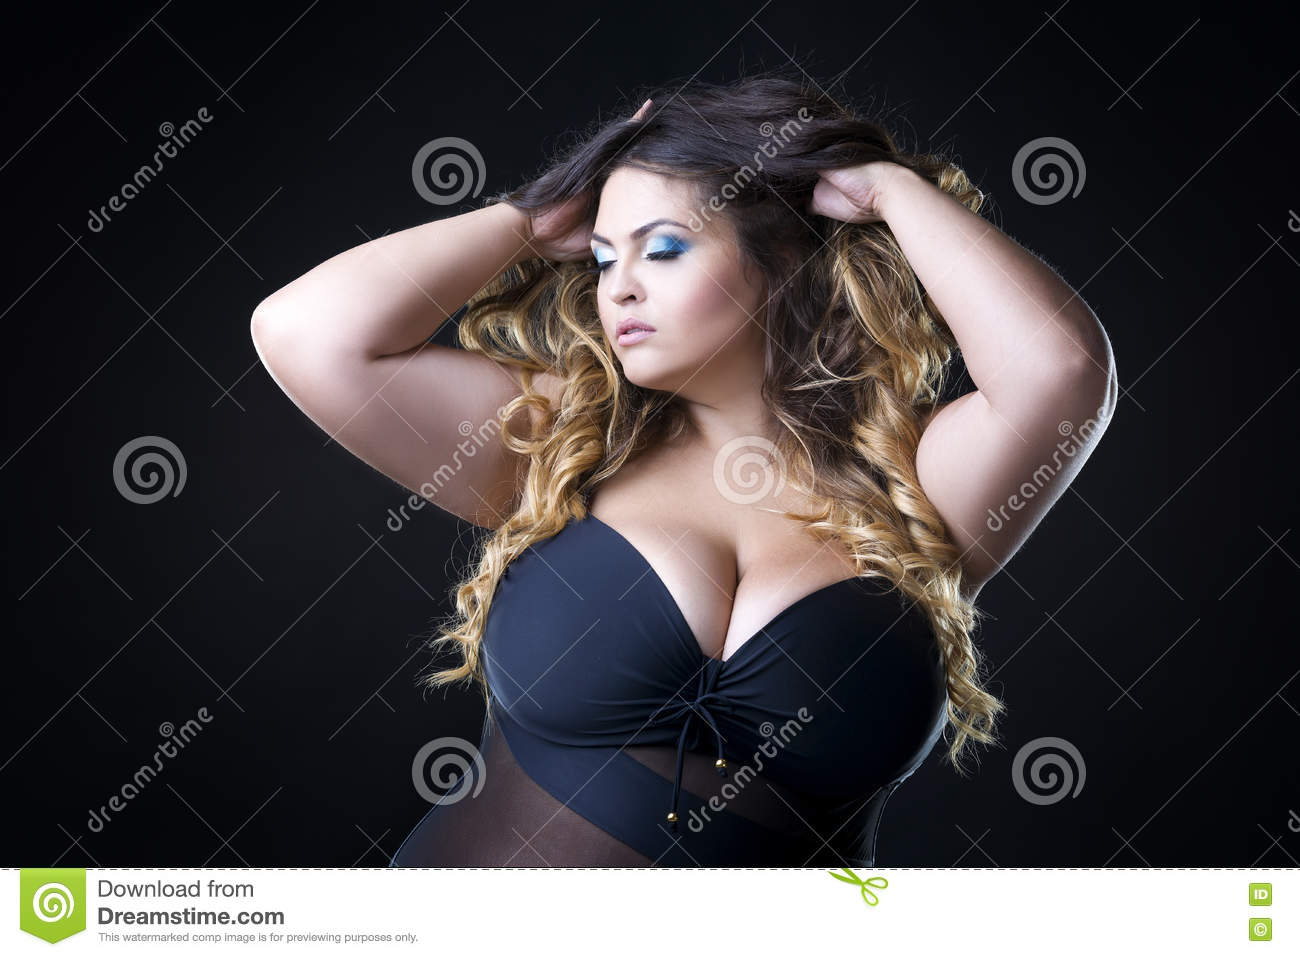 Woman With Xxl Tits 11